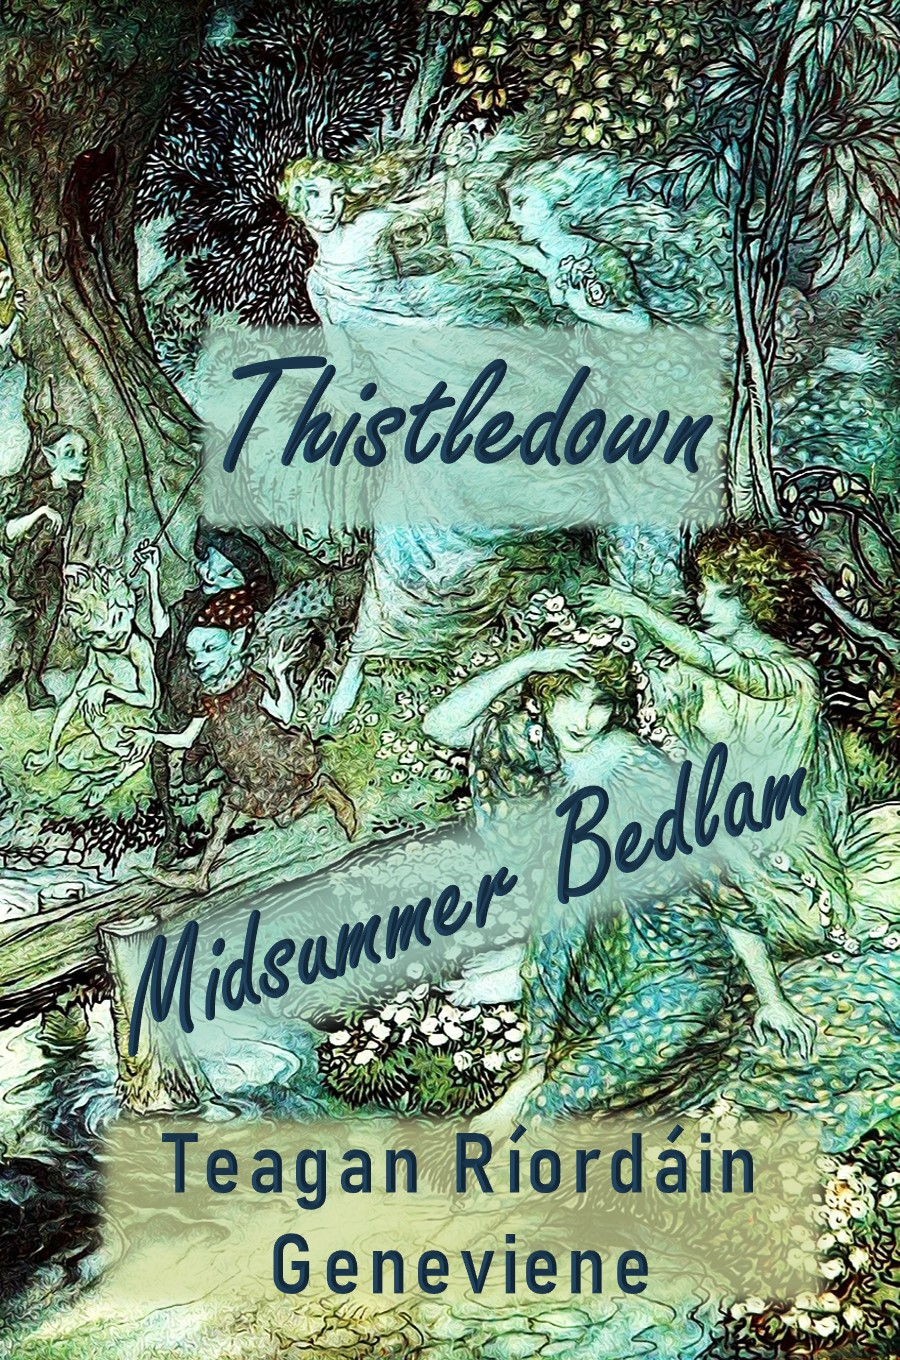 Thistledown - Midsummer Bedlam. New cover by Teagan R. Geneviene